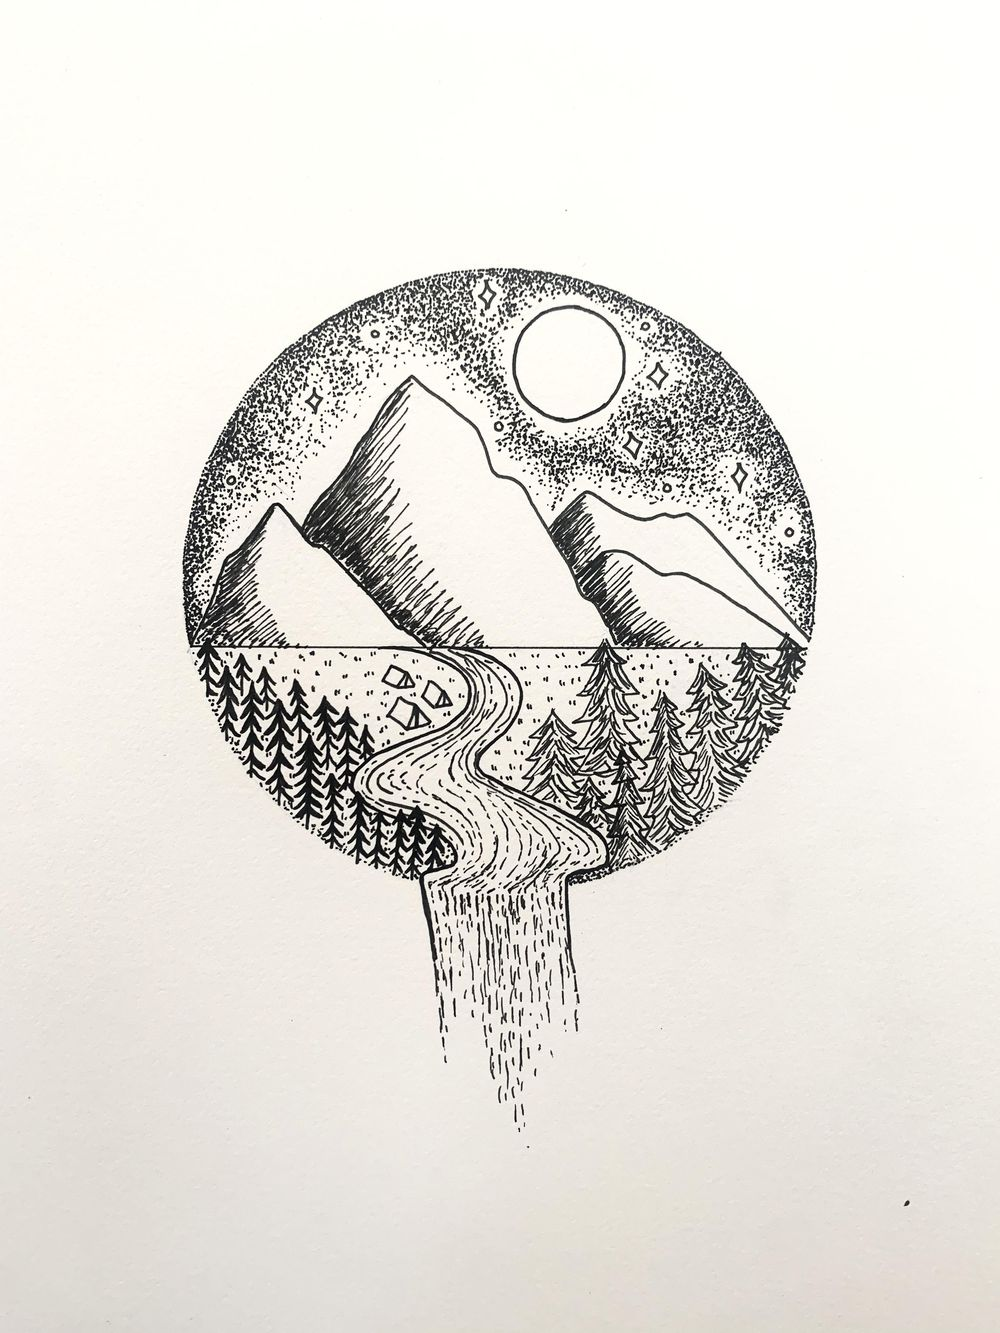 Land, Sky, Water Inspiration - image 2 - student project